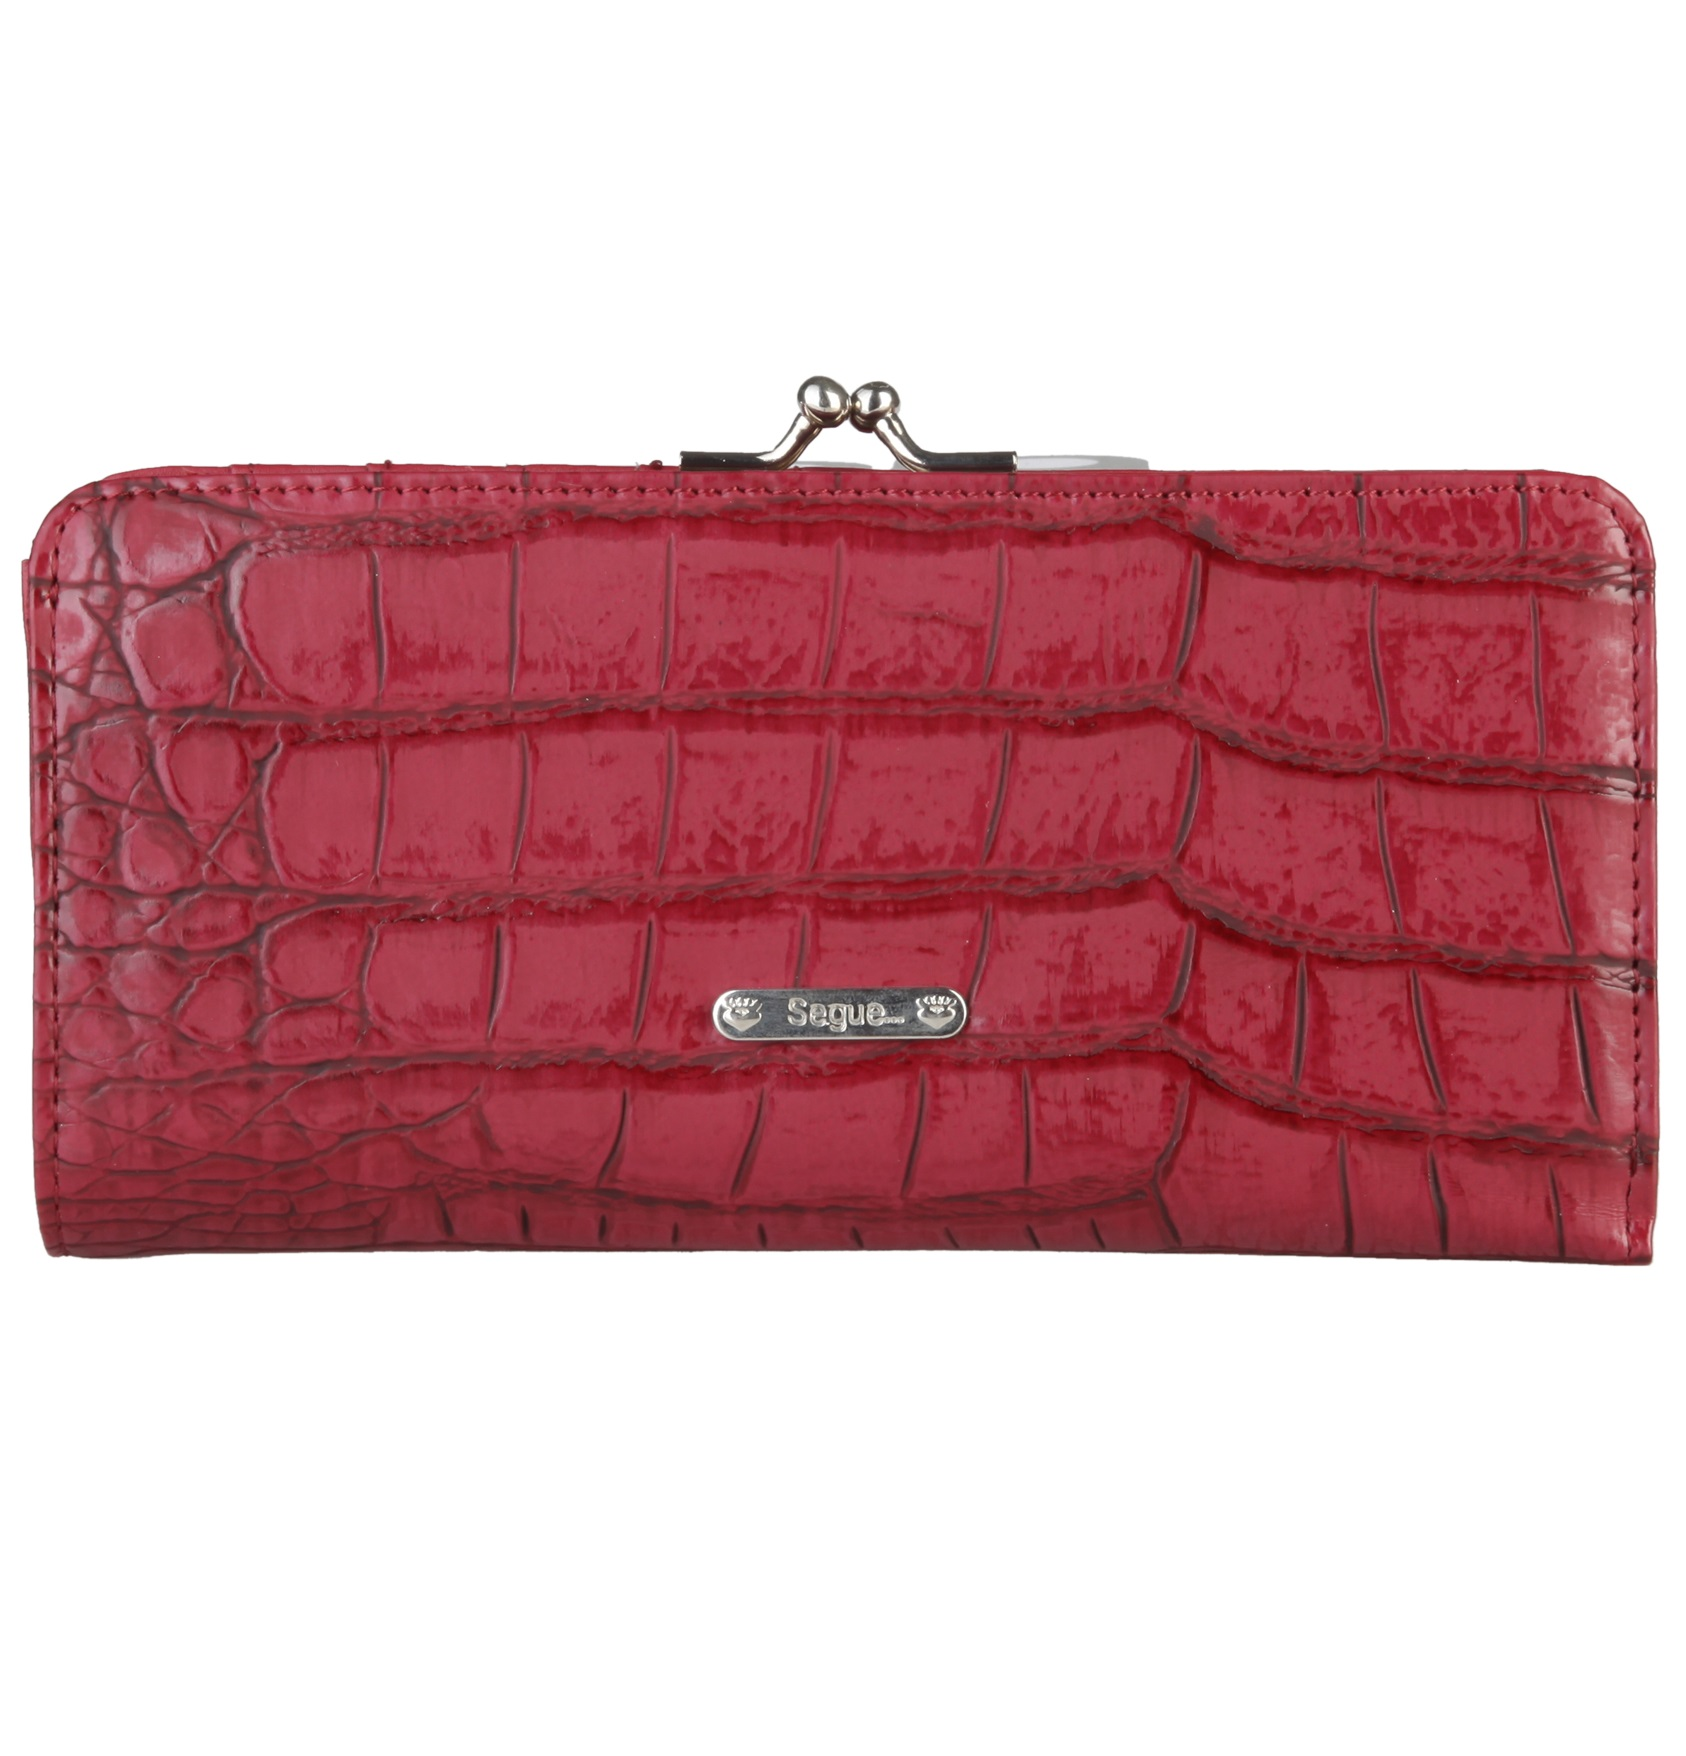 Segue Wallet Red Rf600119